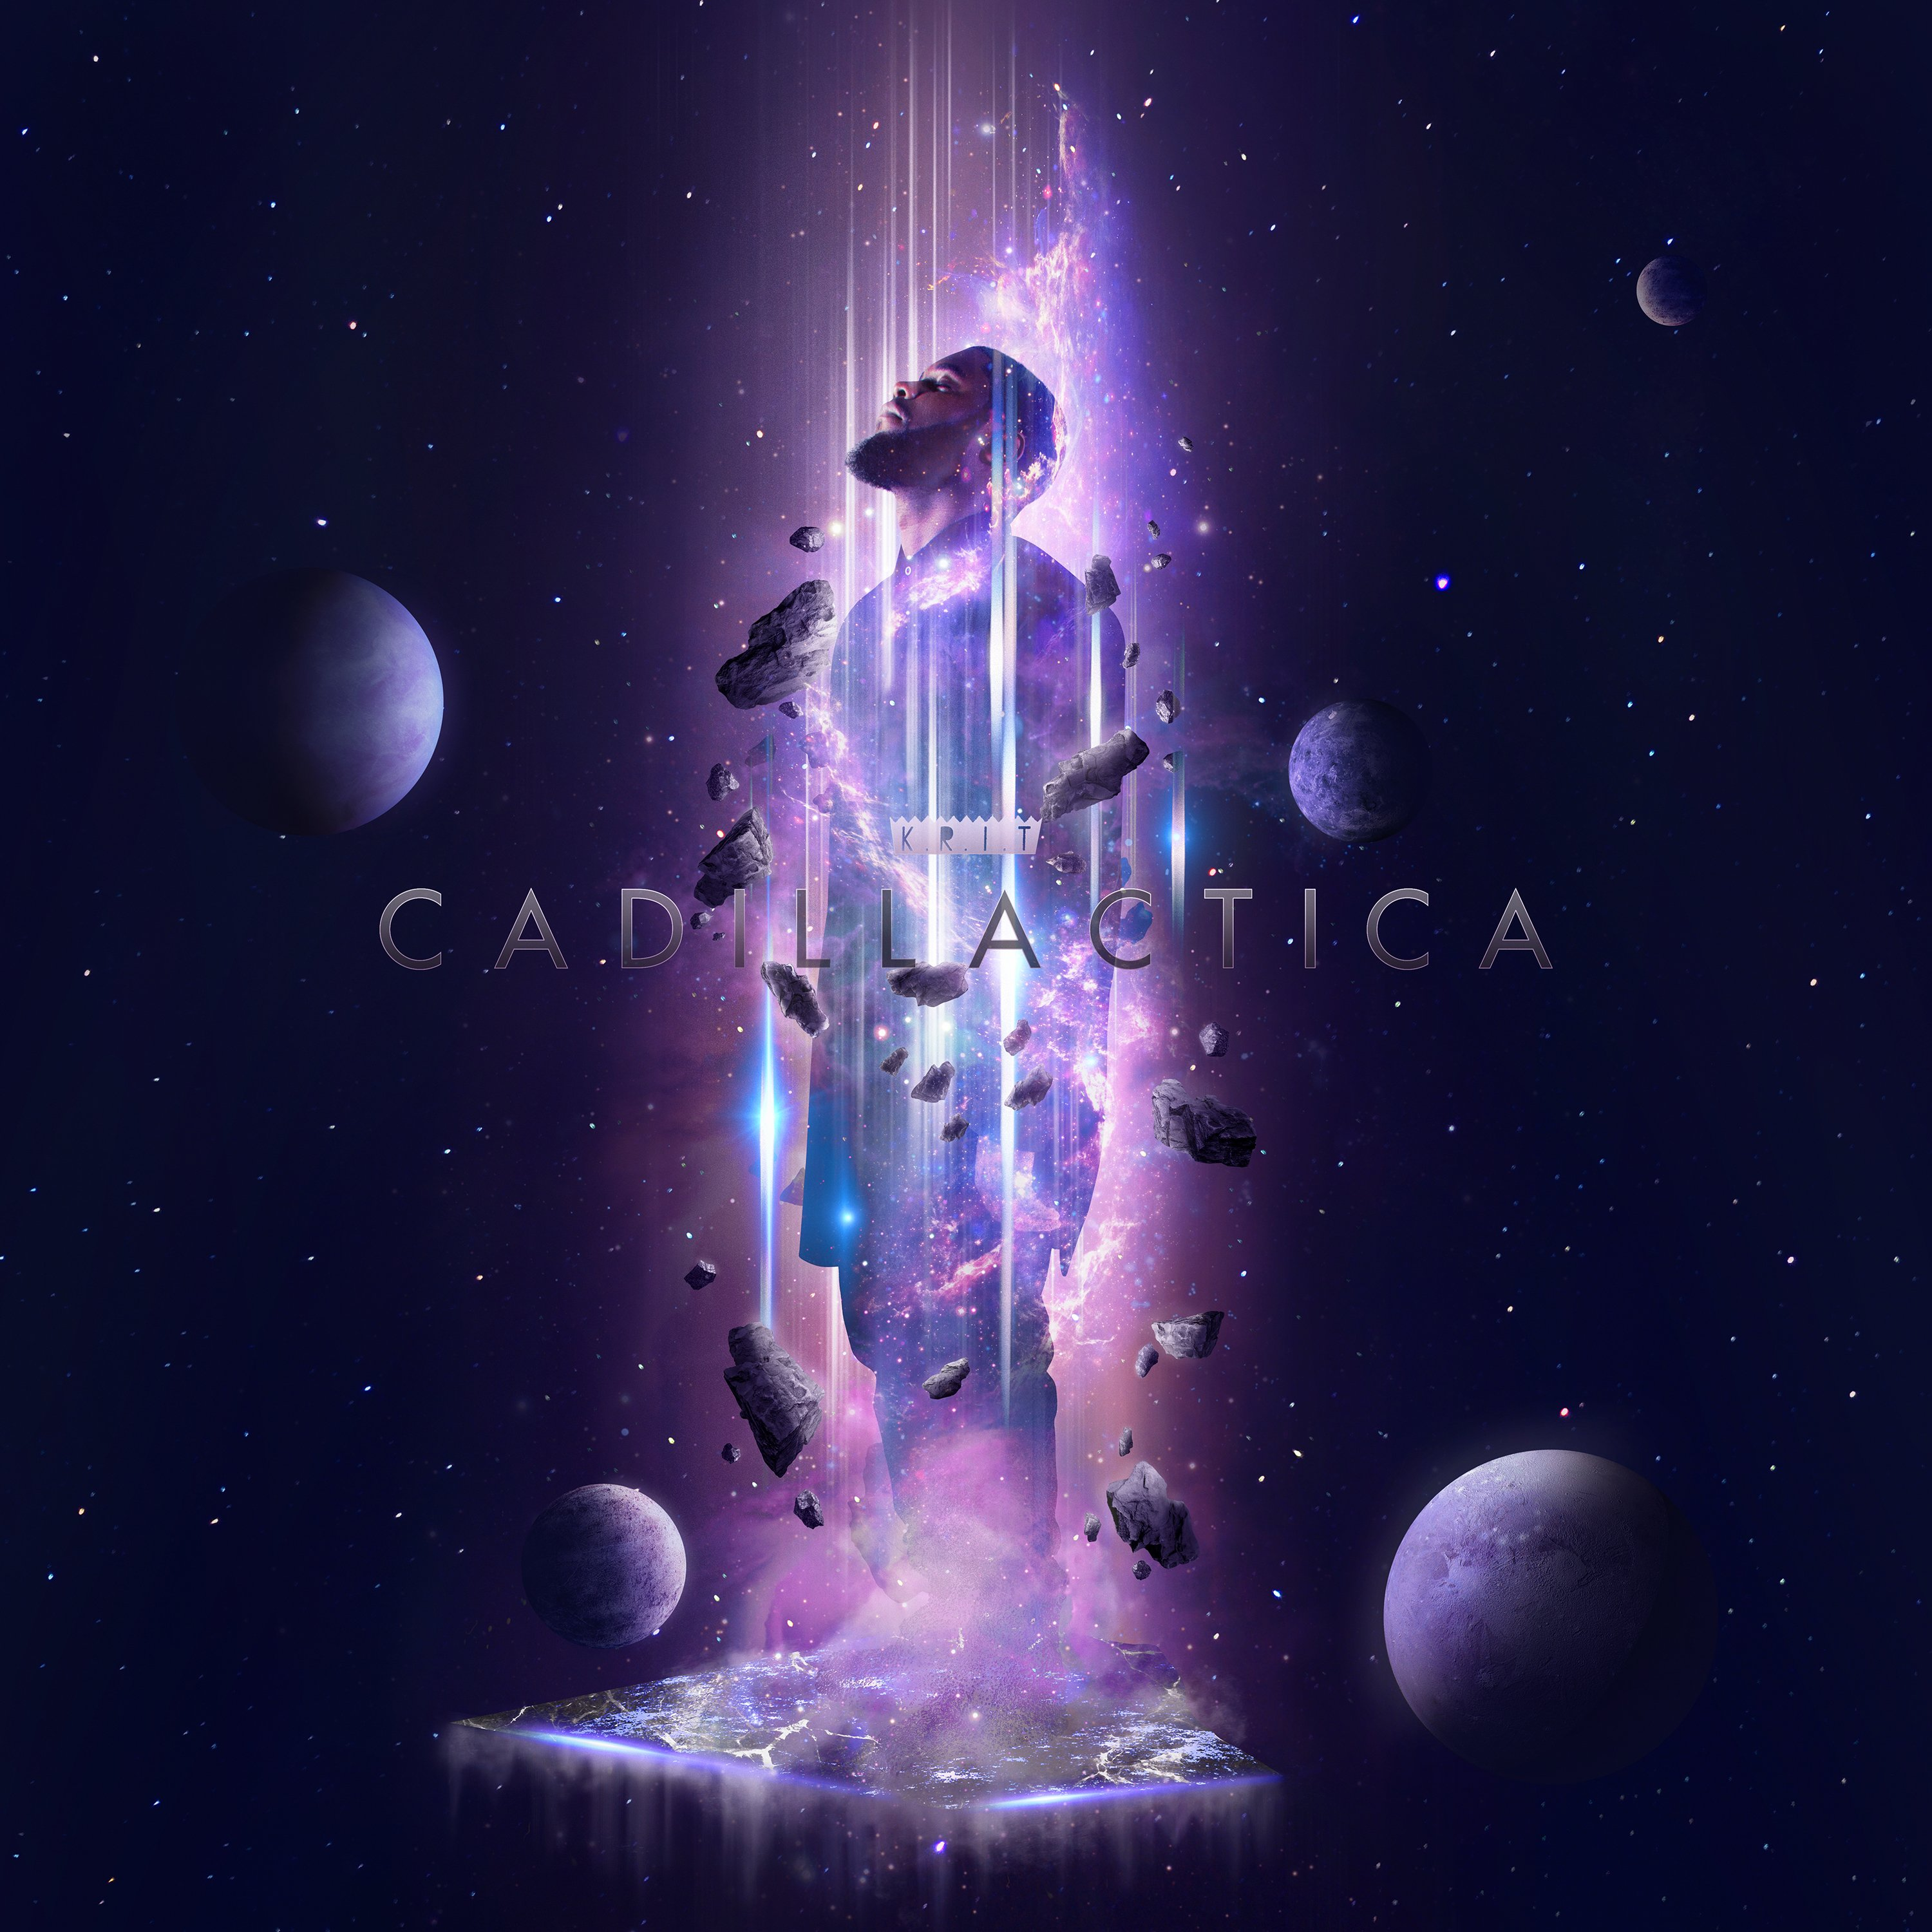 cadillactica-big-krit-album-stream-cover-art-2014